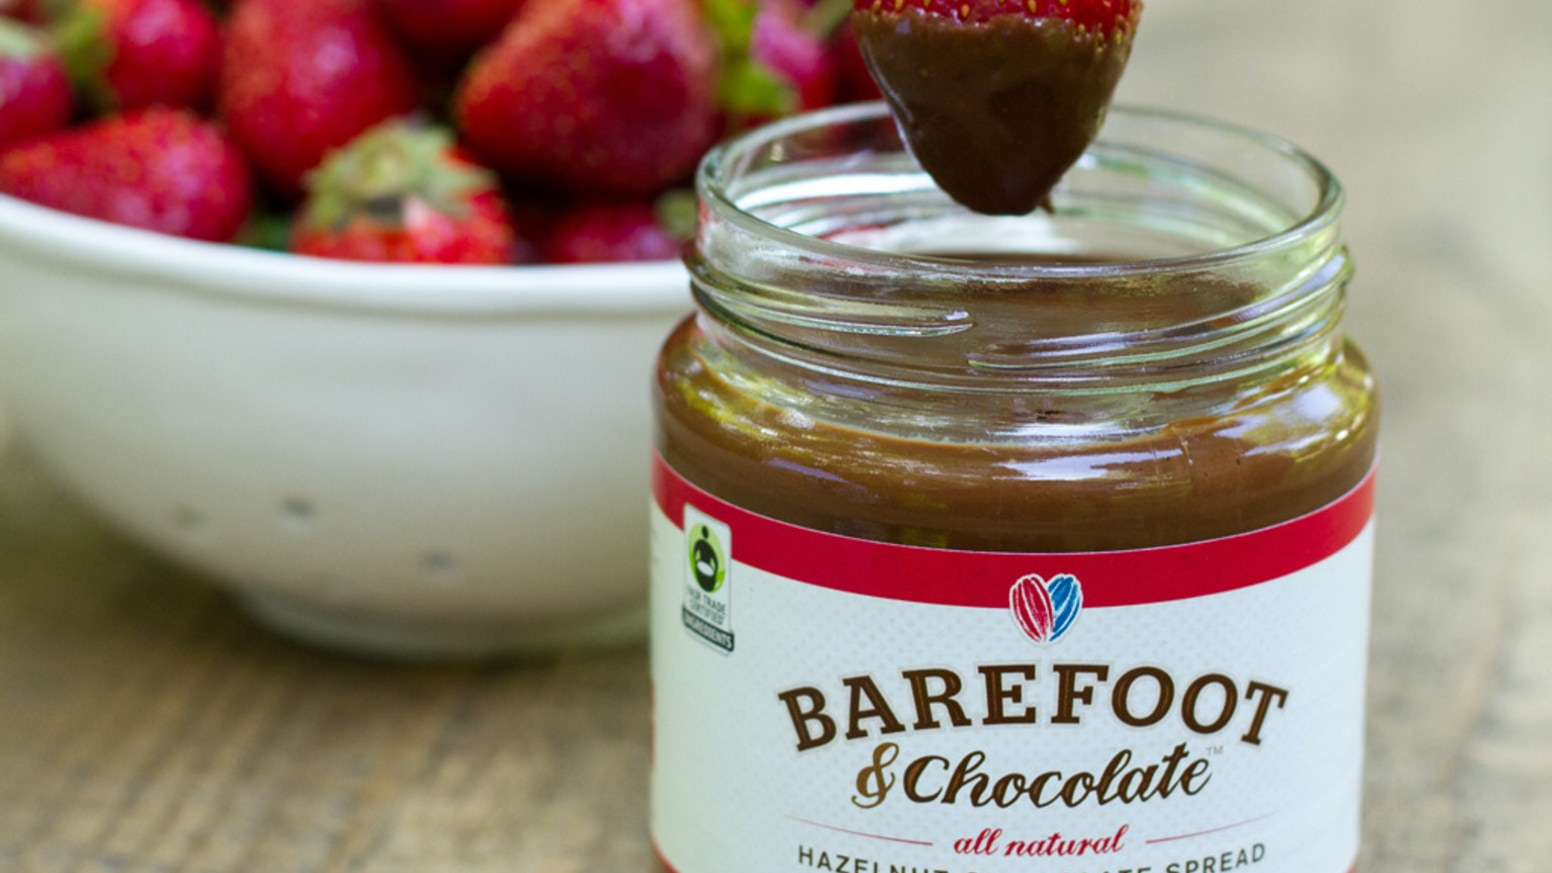 Barefoot & Chocolate - Fair Trade Chocolate Spreads by Barefoot ...